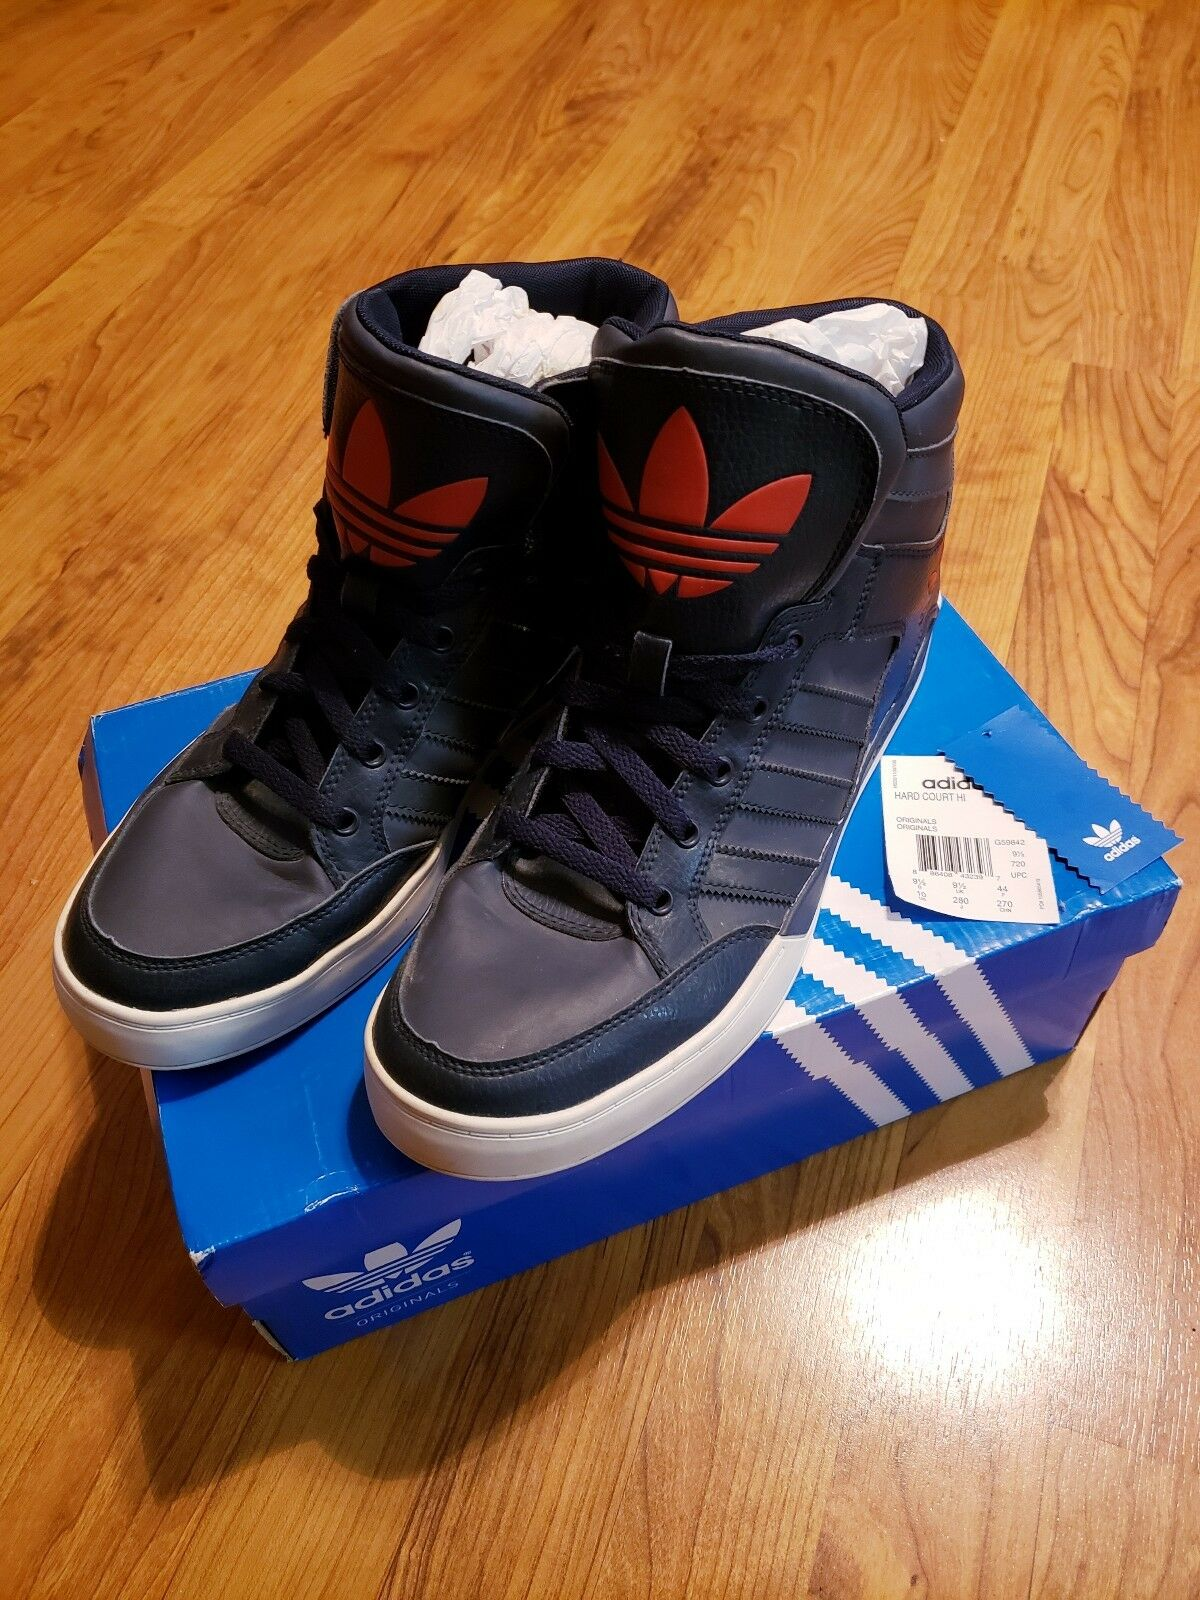 Sz 10 men's - Adidas Hard Court Hi navy navy navy bluee hi-top athletic sneakers, G59842 013253